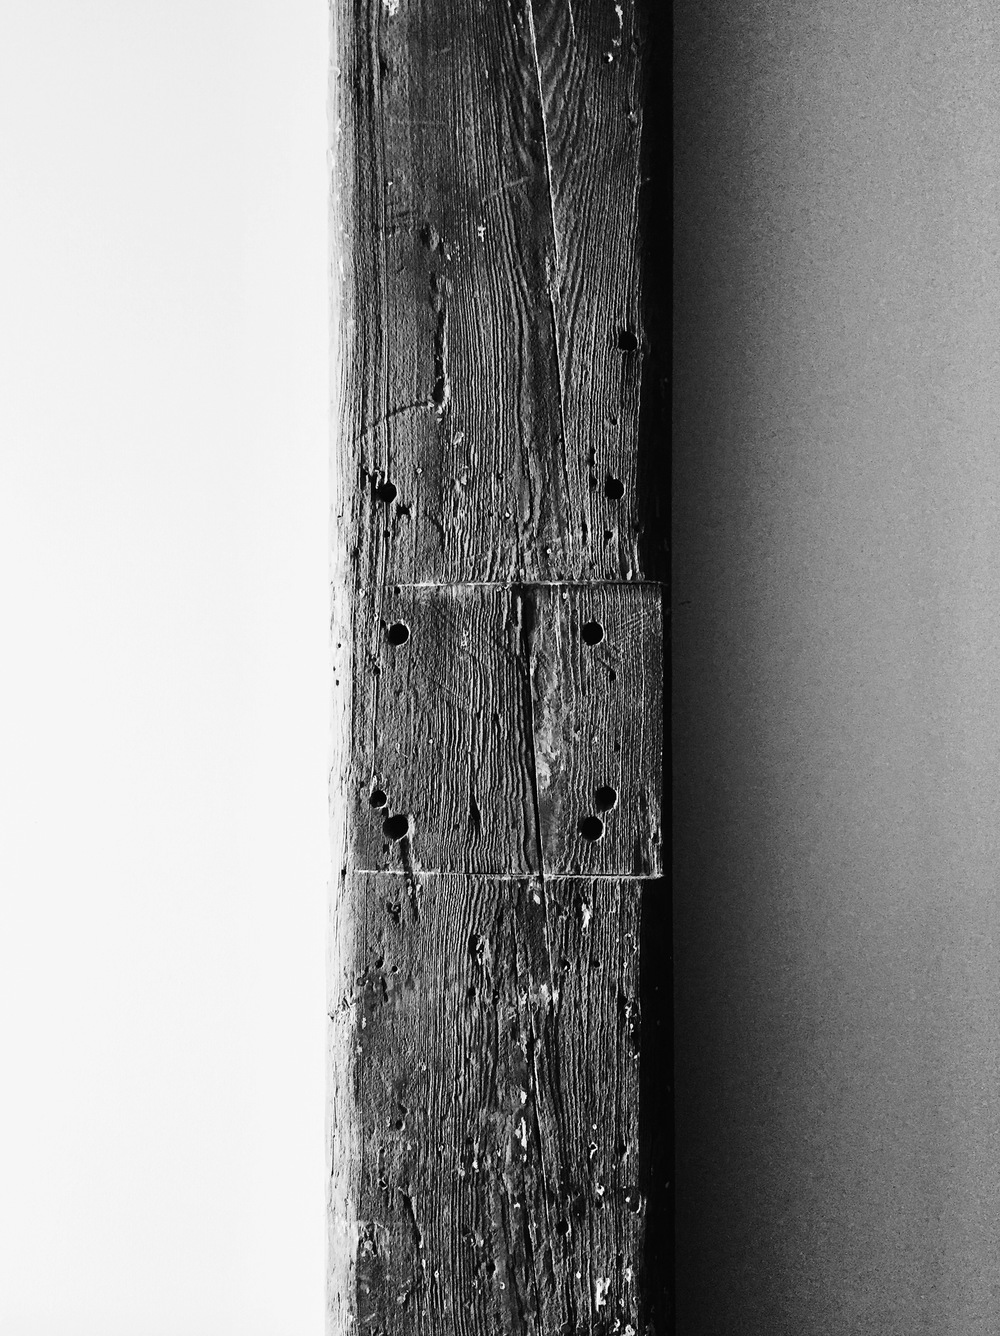 Wooden beamsthat run throughout the floors and ceilings of the Wythe Hotel.